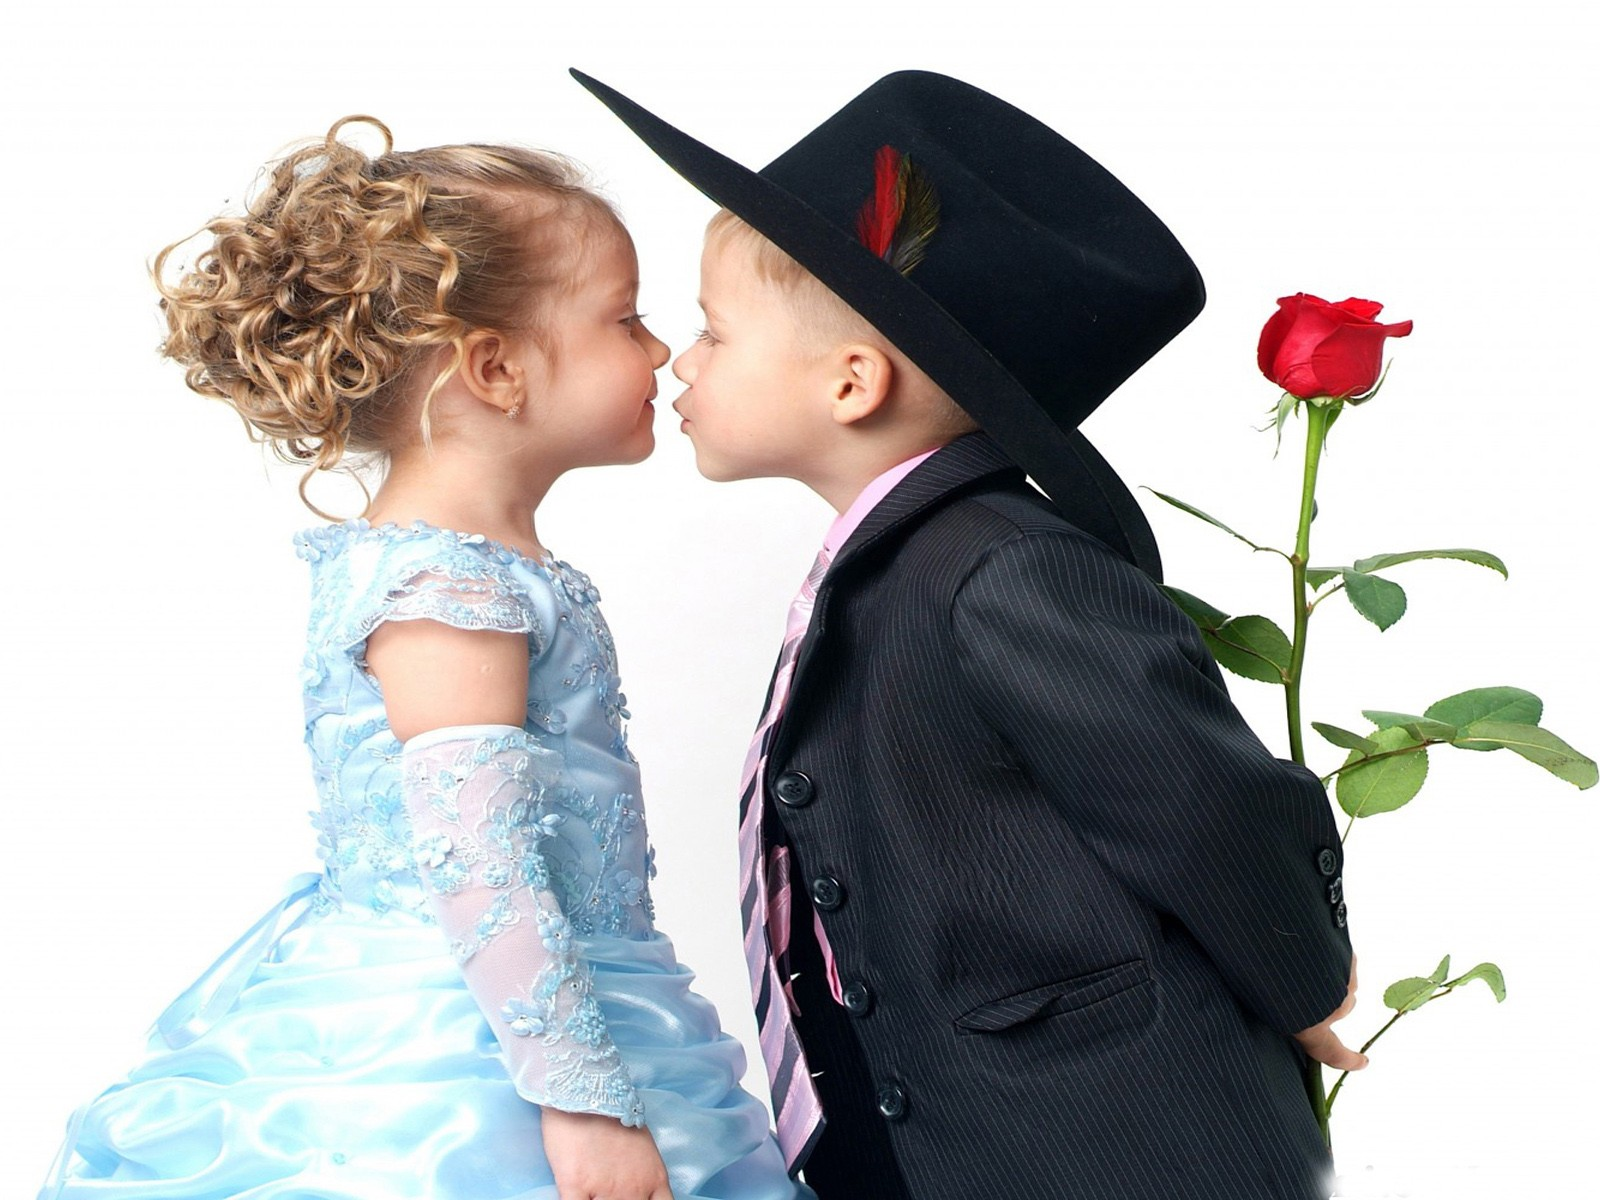 Beutifull Cute hd wallpapers baby kiss desktop dounlod full hd 1600x1200